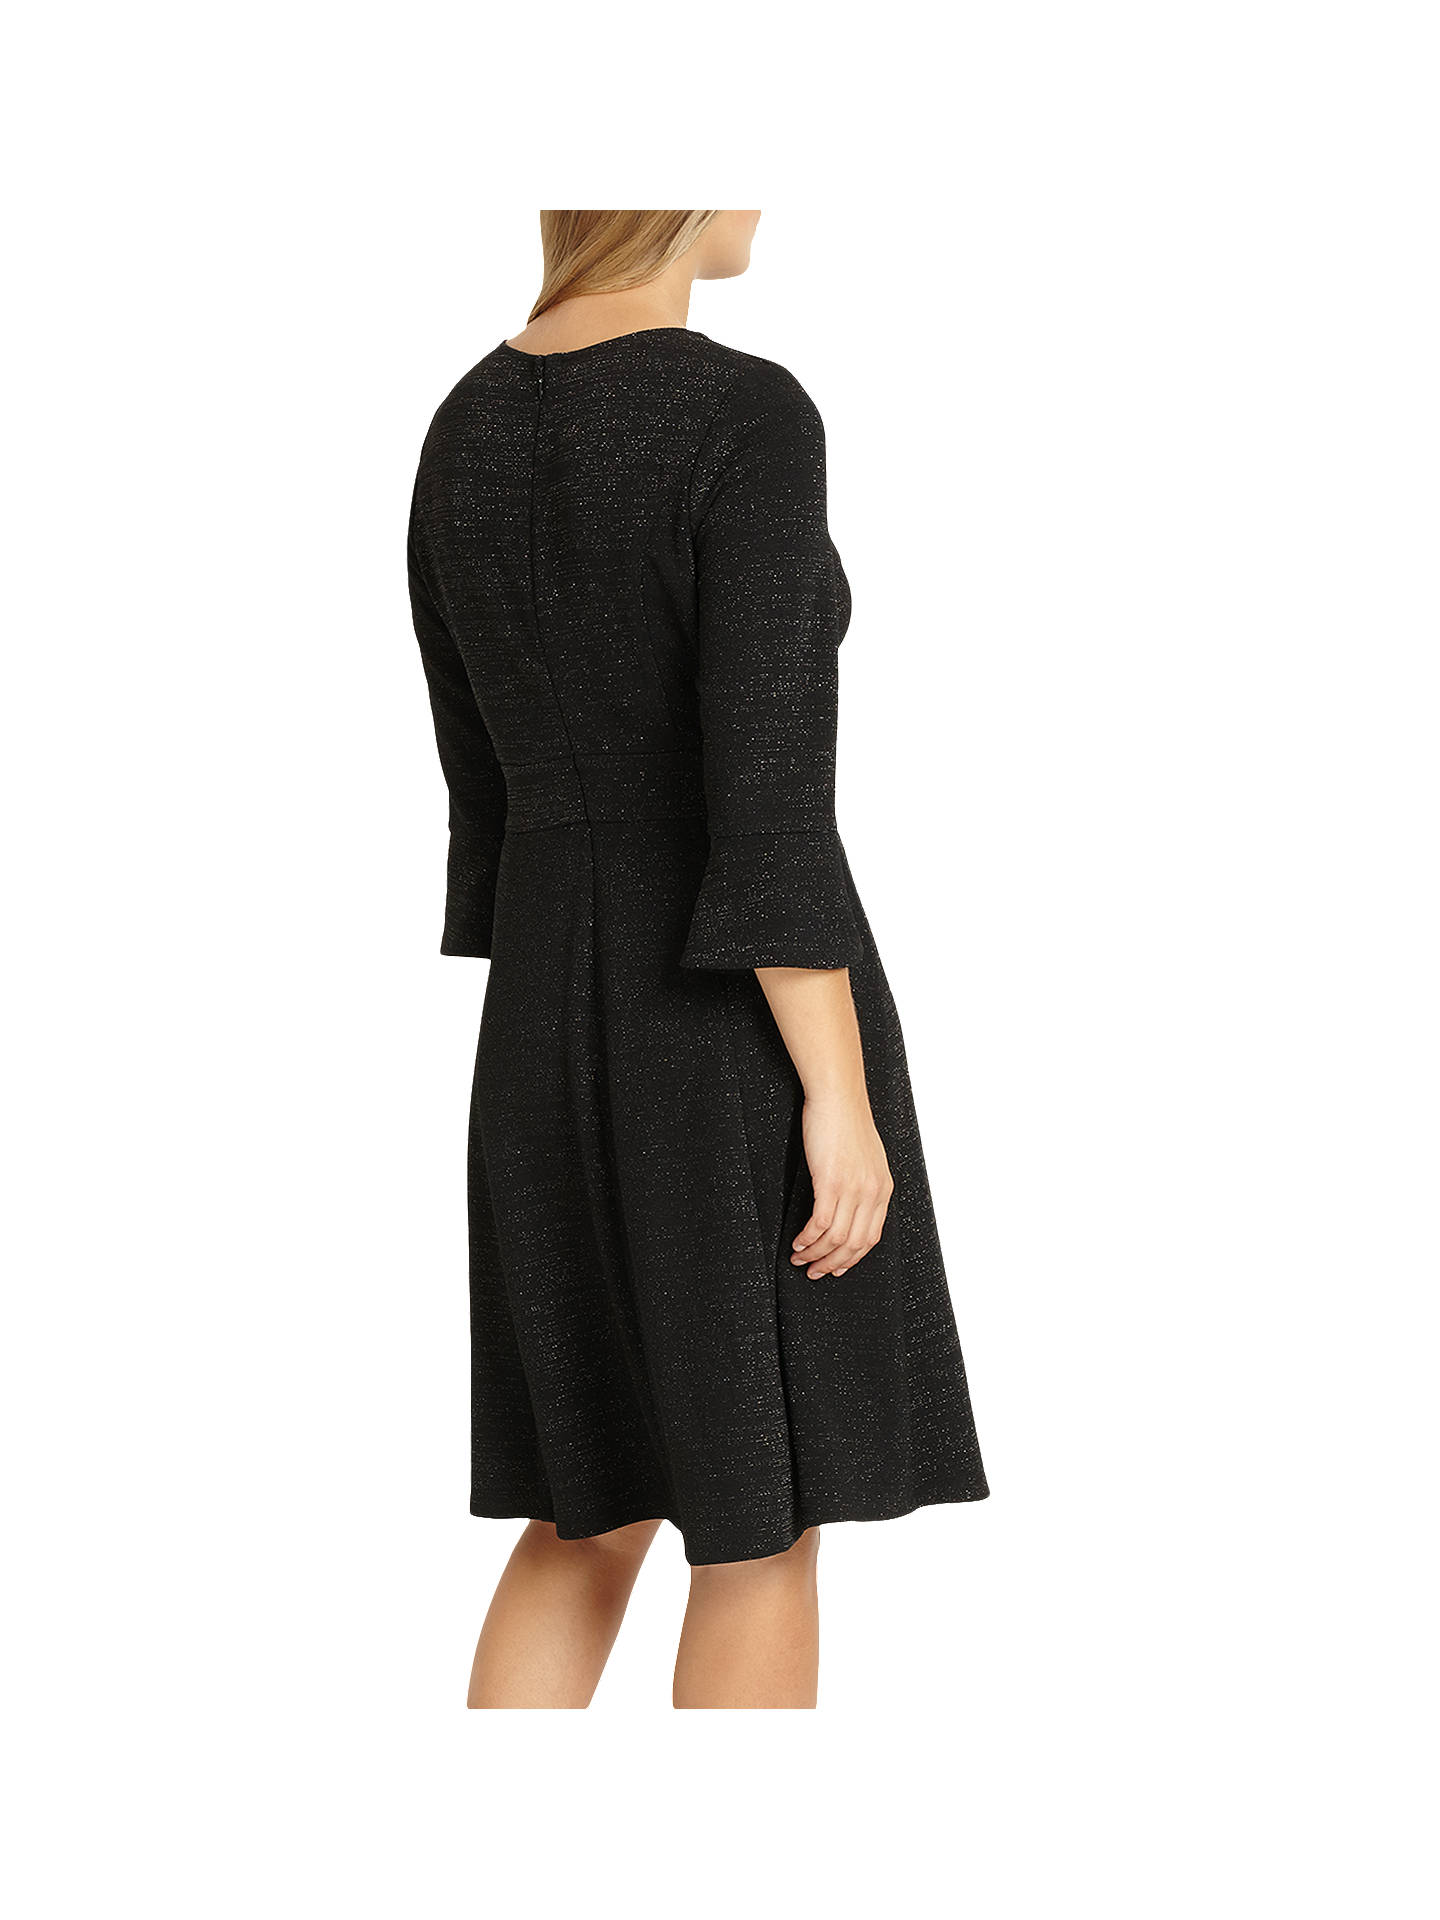 BuyStudio 8 Rochelle Dress, Black, 12 Online at johnlewis.com